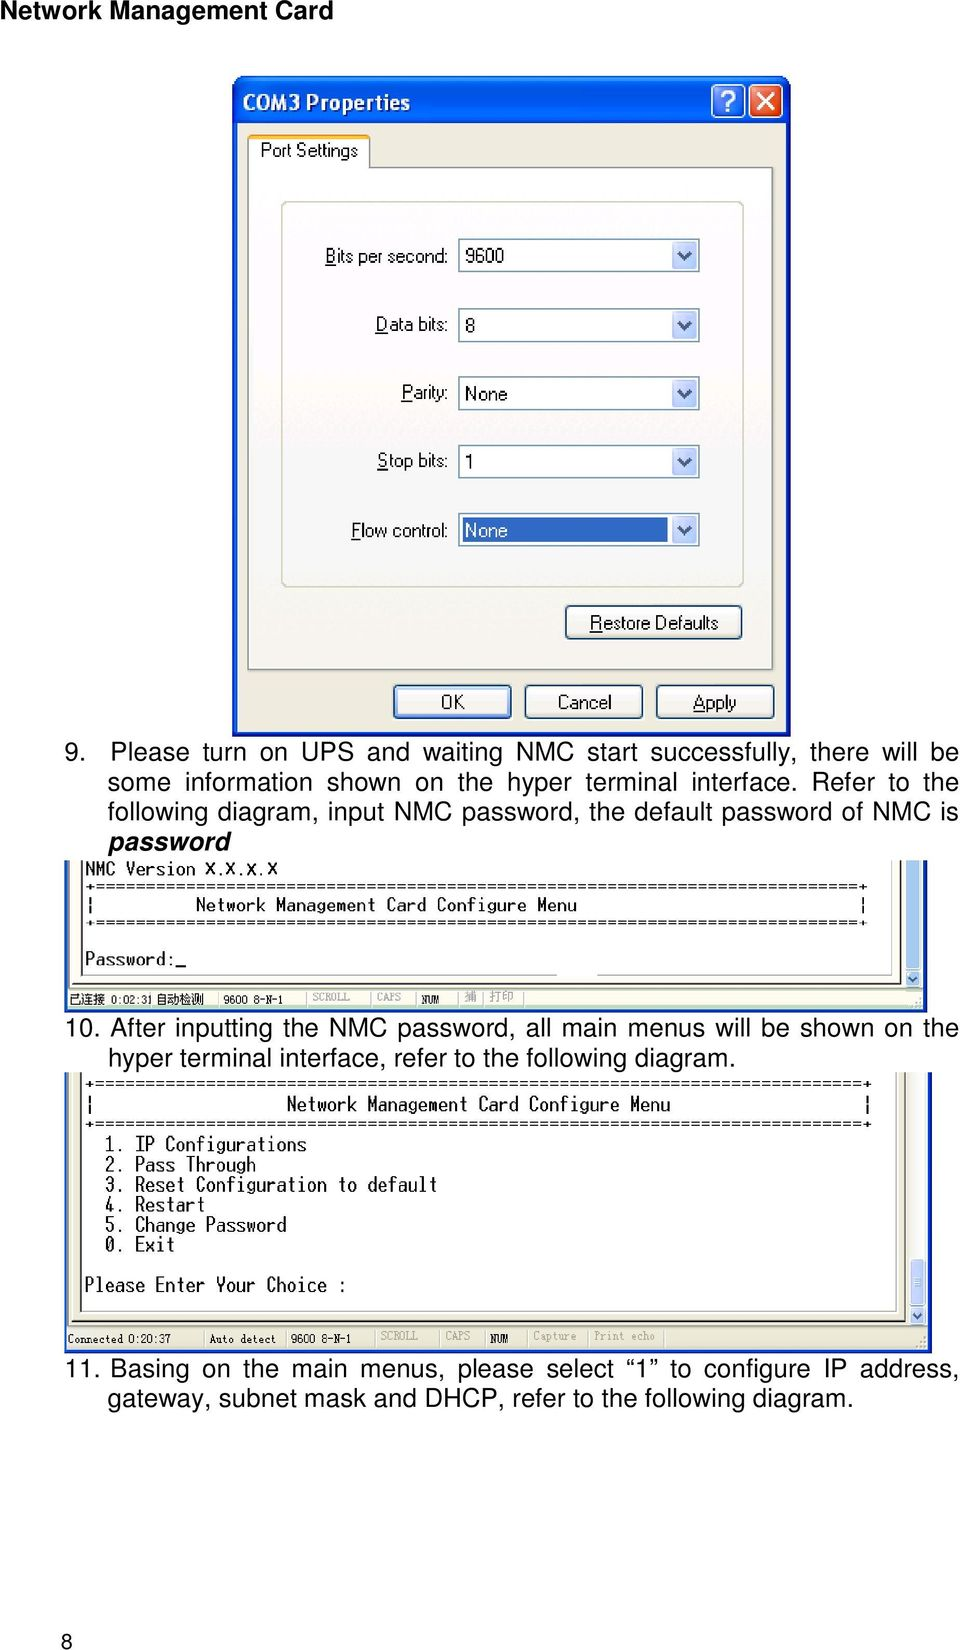 After inputting the NMC password, all main menus will be shown on the hyper terminal interface, refer to the following